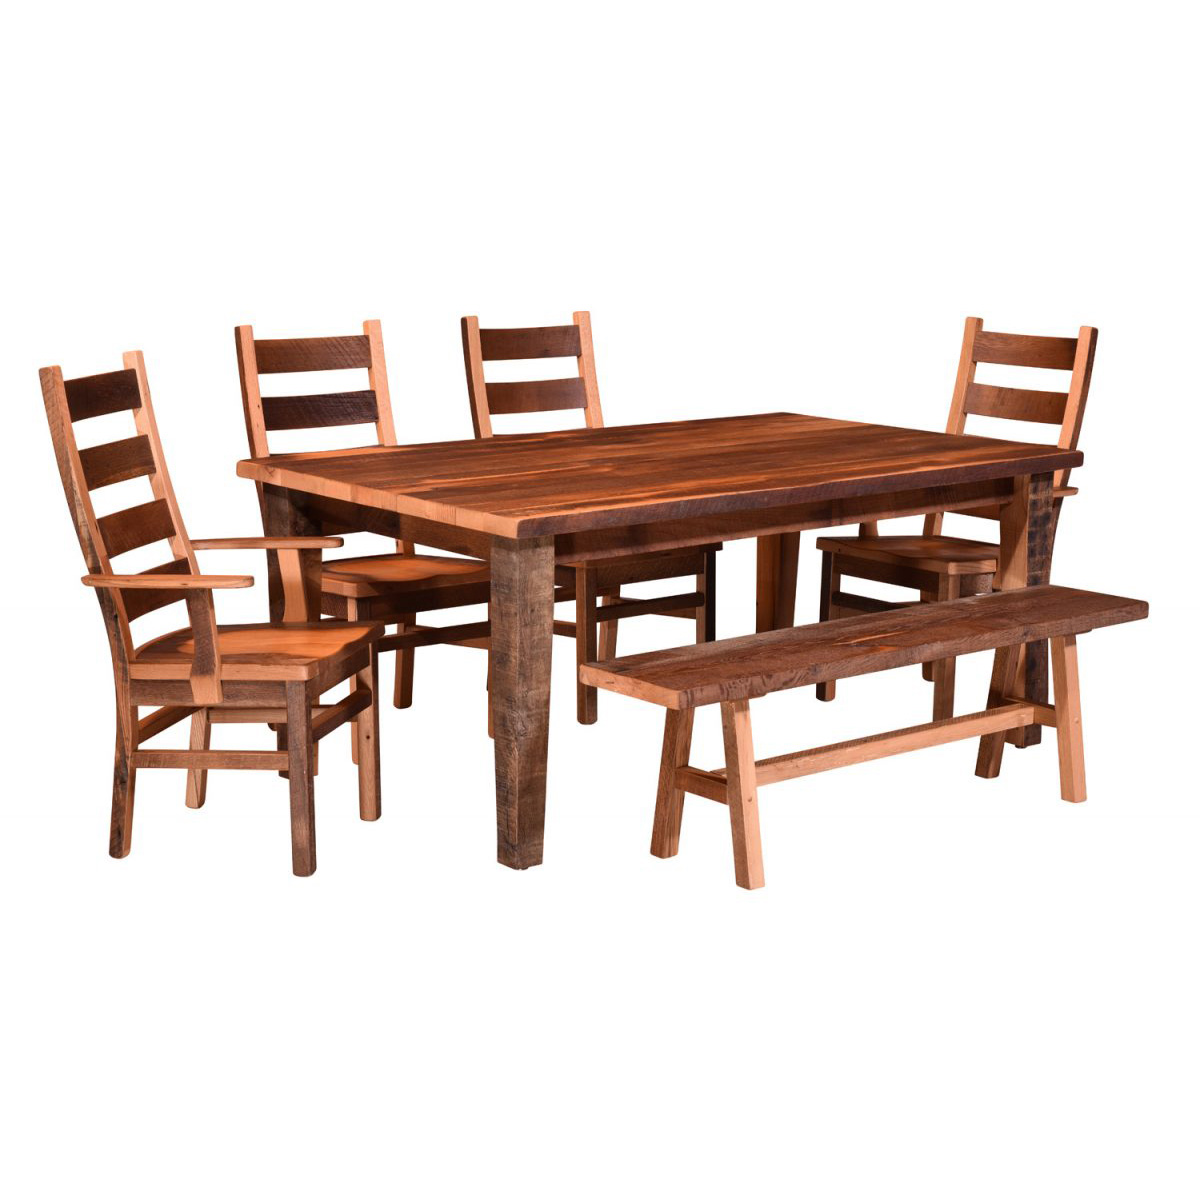 barnwood dining room chairs swivel with arms almanzo table tapered leg amish crafted